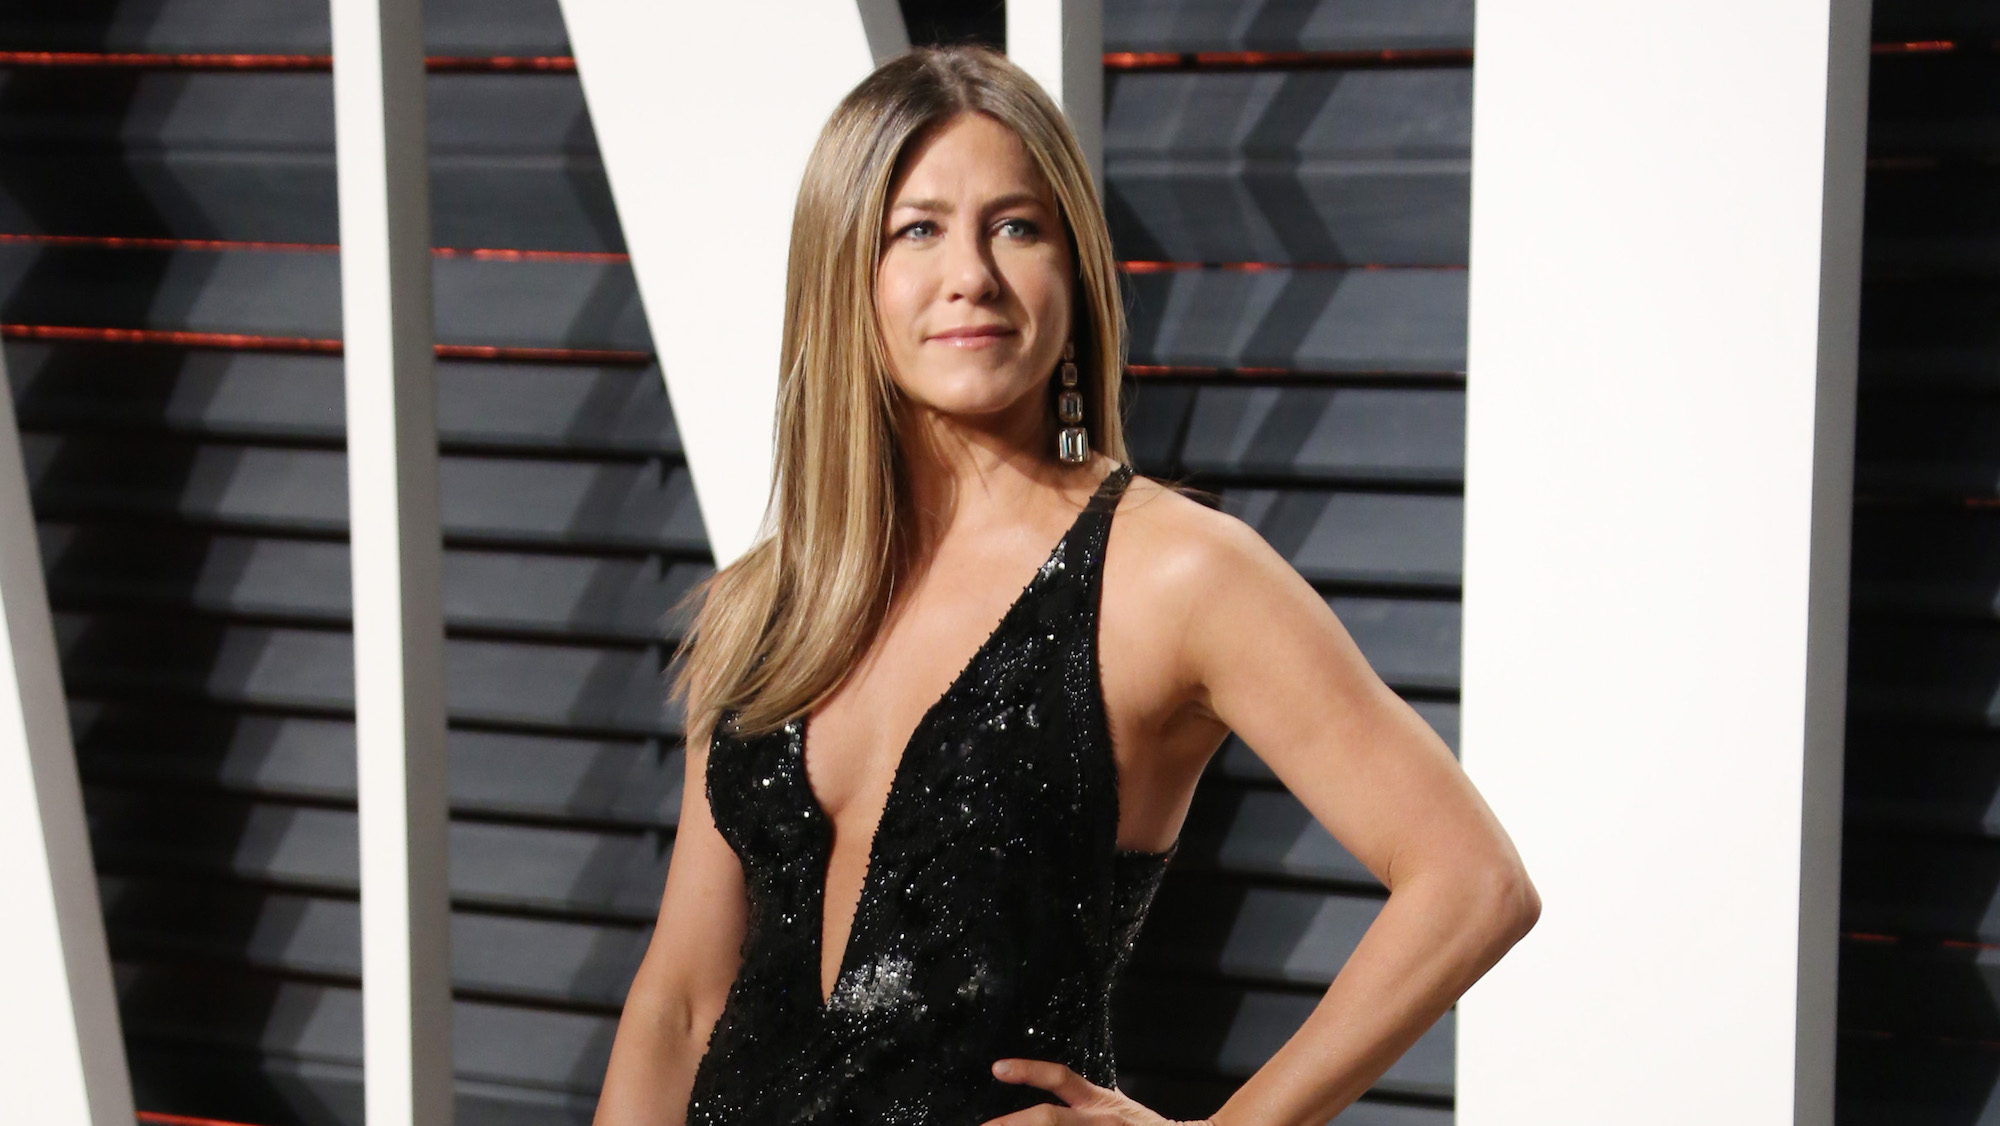 Jennifer Aniston Reveals The Lipstick She Wore On Friends